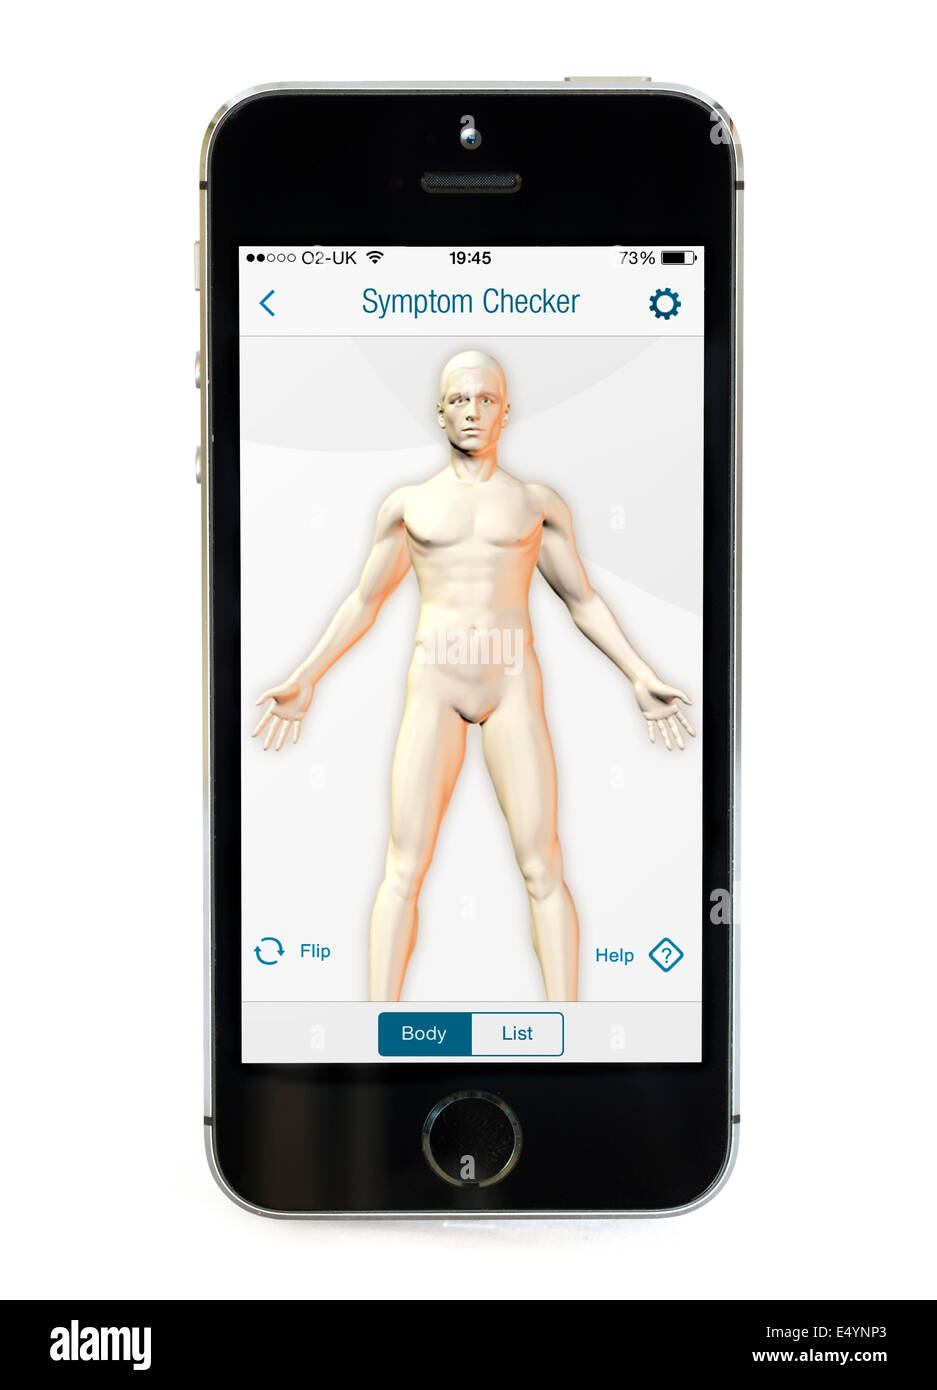 Symptom Checker on the WebMD app on an Apple iPhone 5S - Stock Image